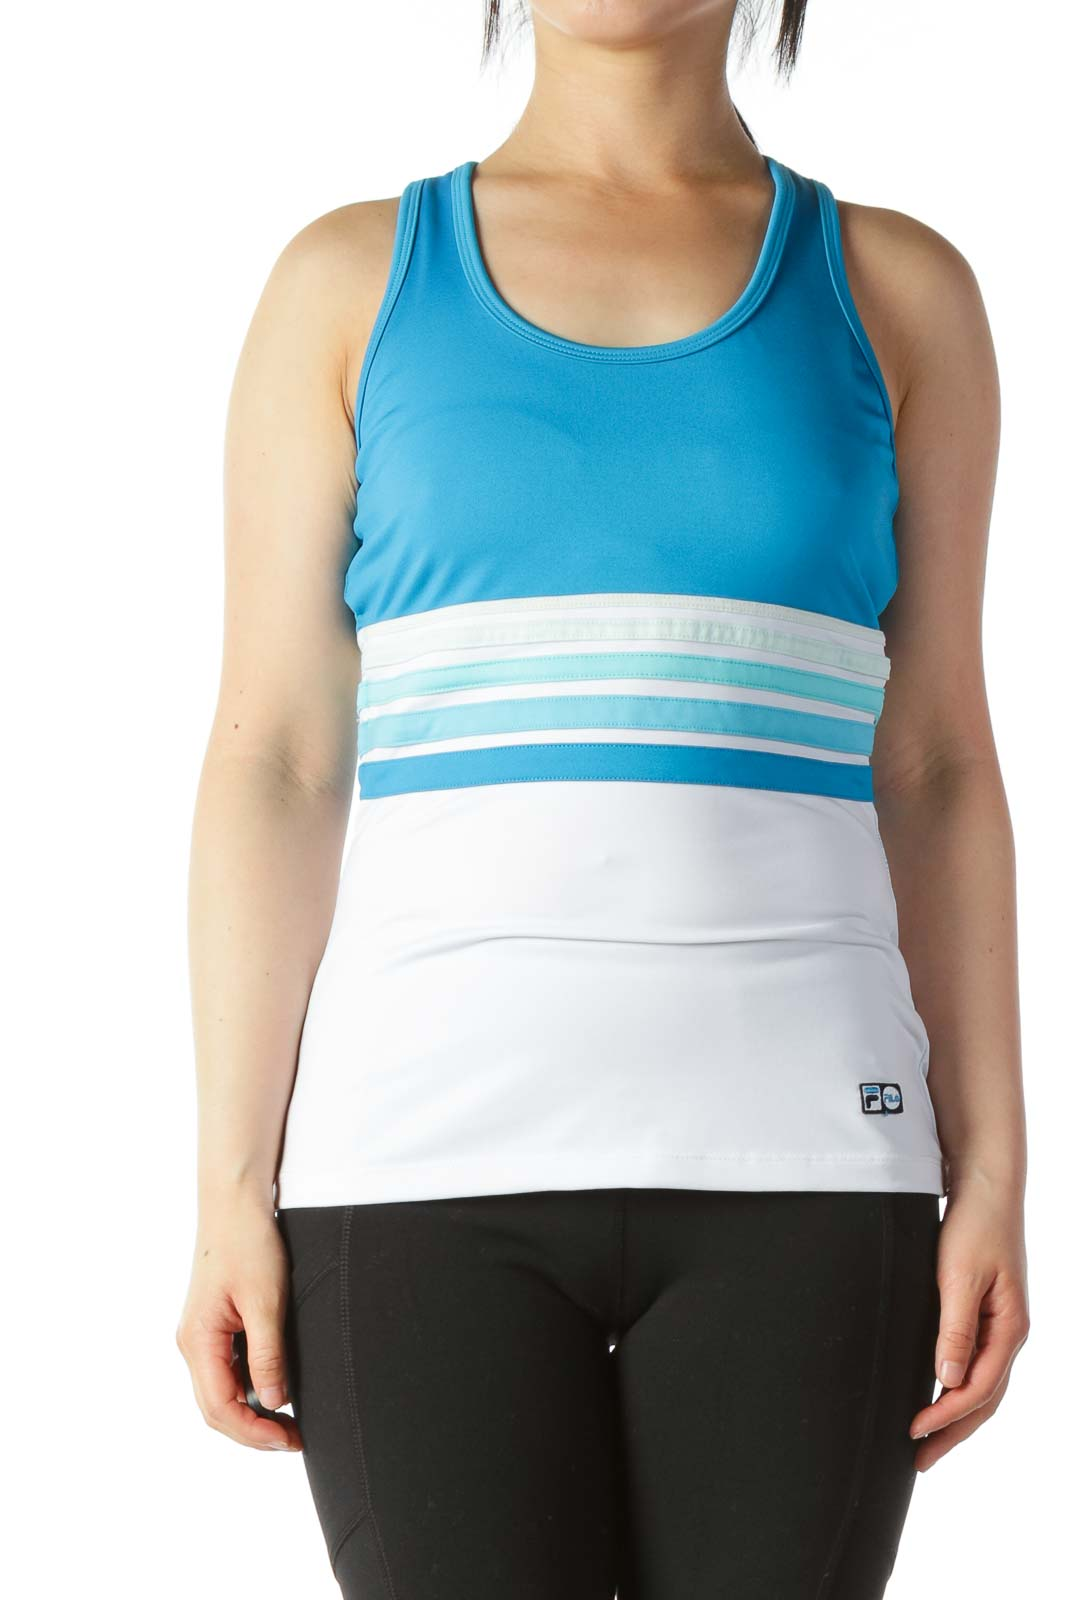 Light-Blue White Racerback Sports Tank with Build-In Bra